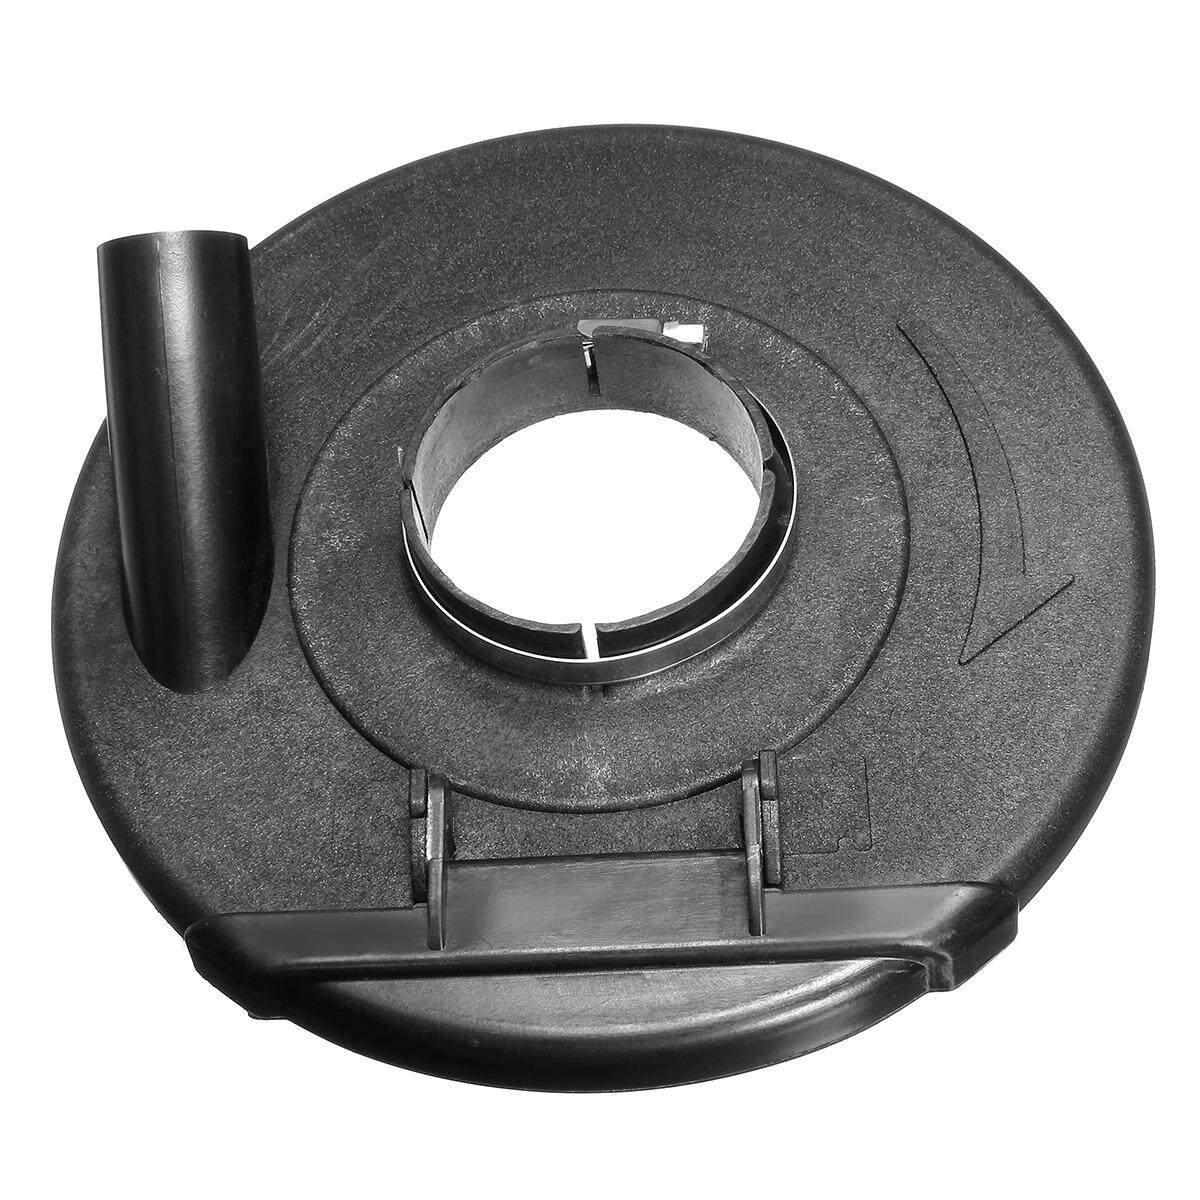 vacuum dust shroud cover for angle grinder hand grinder convertible Low 2# 32mm(1.3)